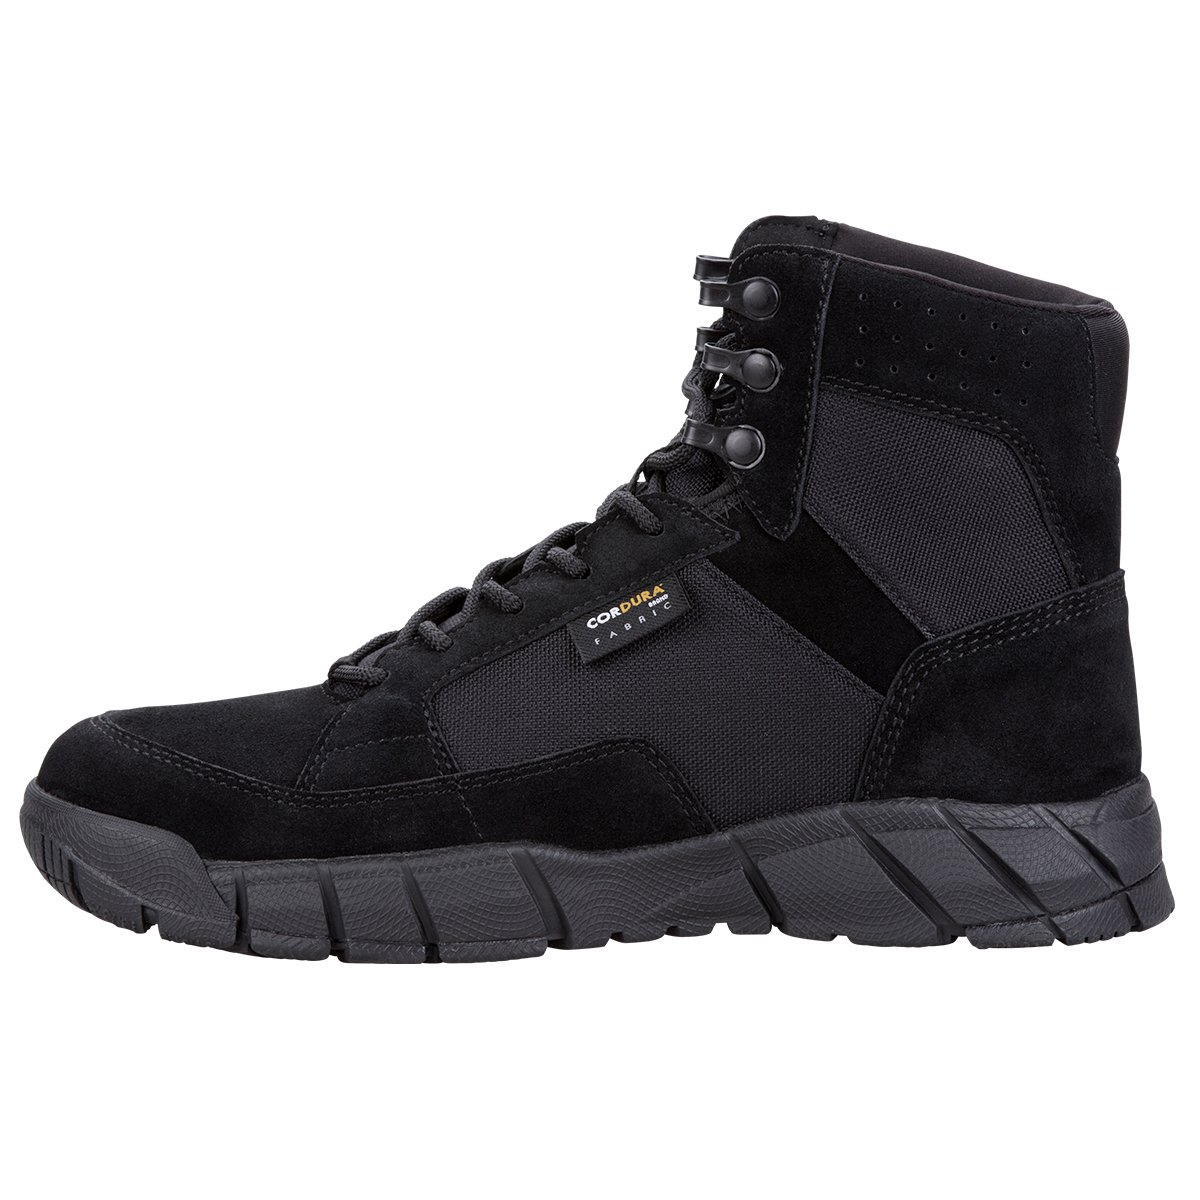 FREE SOLDIER Men's Tactical Boots 6'' inch Lightweight Military Boots for Hiking Work Boots Breathable Desert Boots (Black, 12.5) by FREE SOLDIER (Image #8)